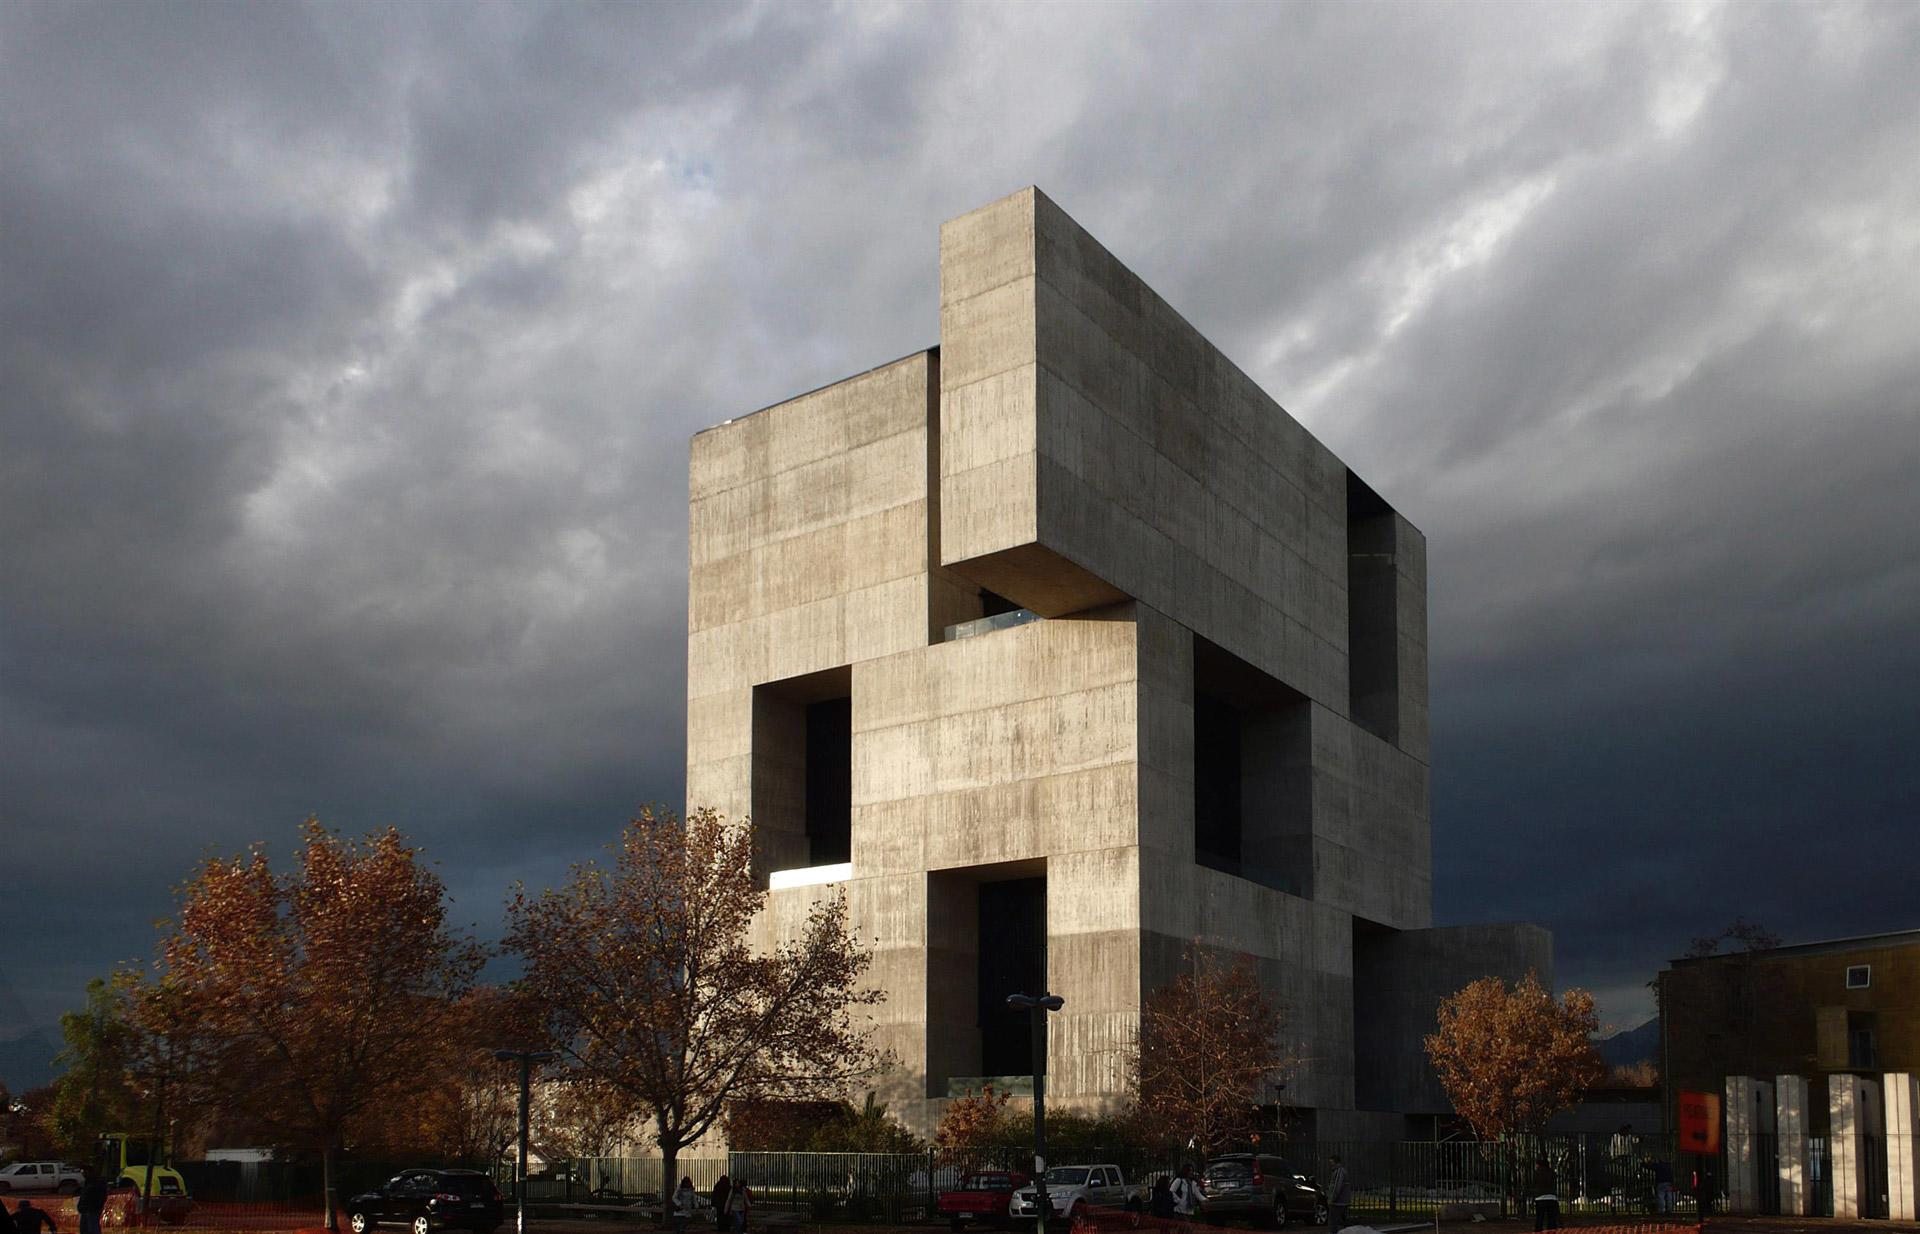 Alejandro-Aravena-Innovation-Center-02_0